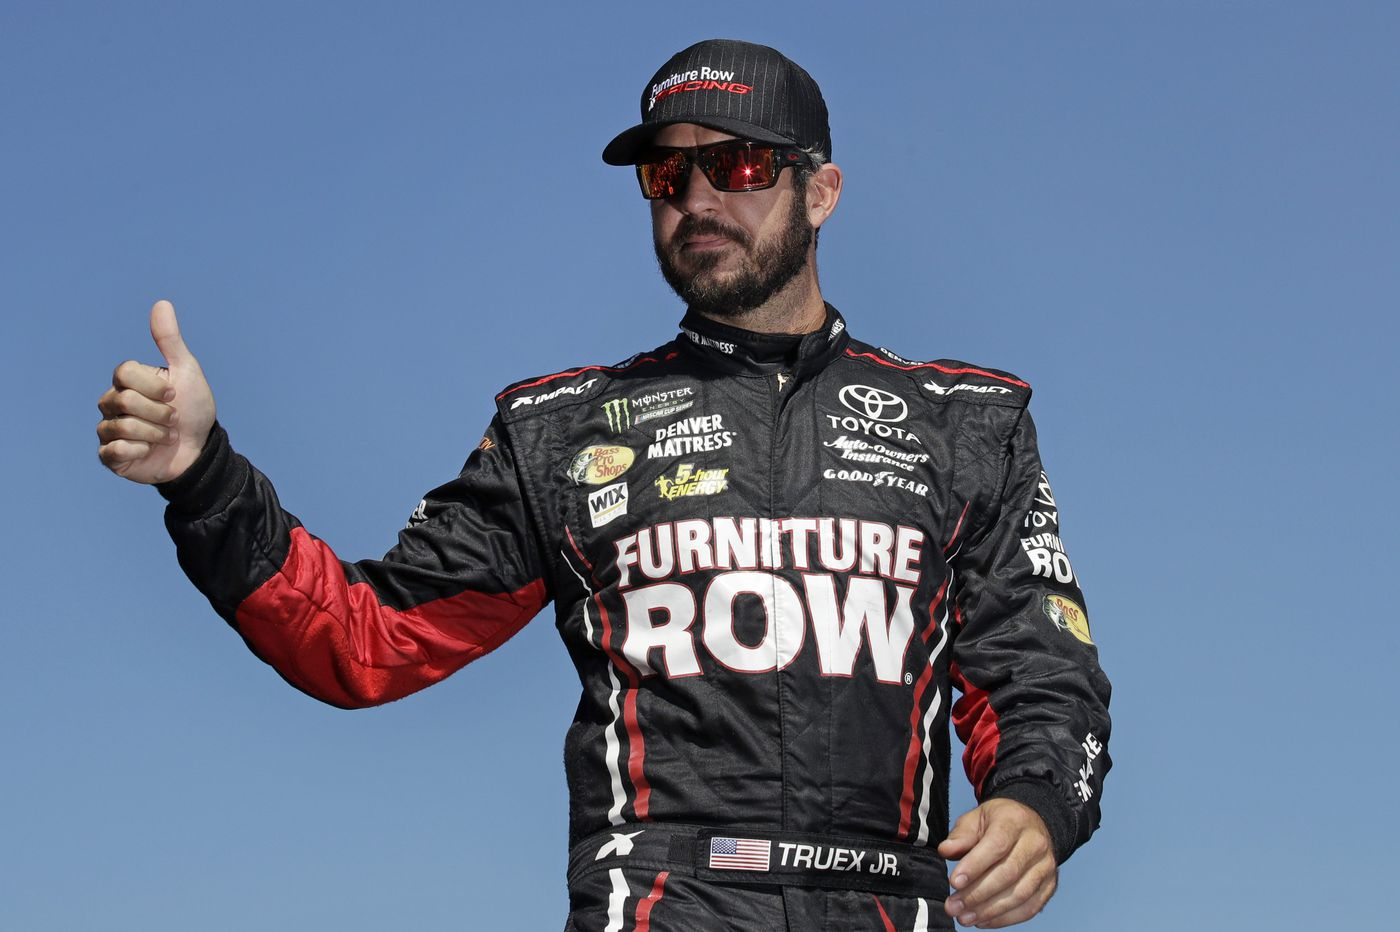 Monster Energy champion Martin Truex Jr. is currently without a ride for 2019